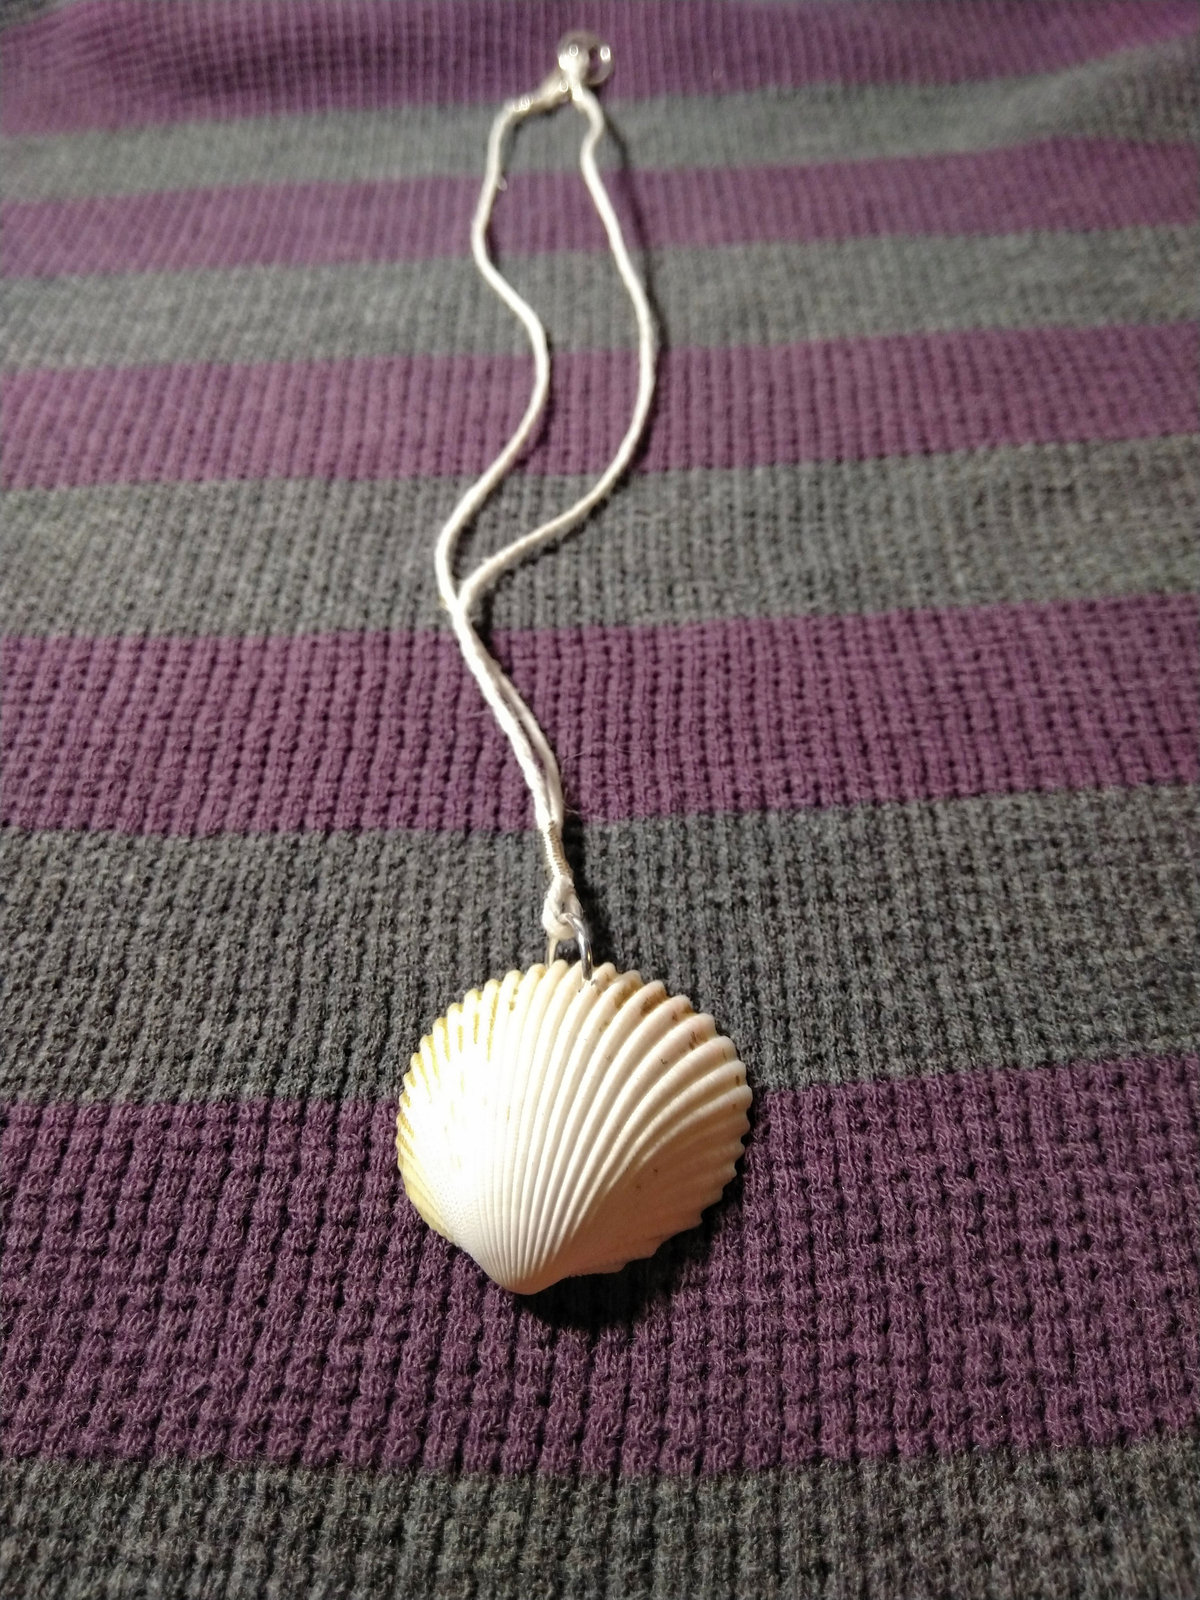 Mermaid Seashell Necklace with Sparkling Lavender Charm and Hemp Cord